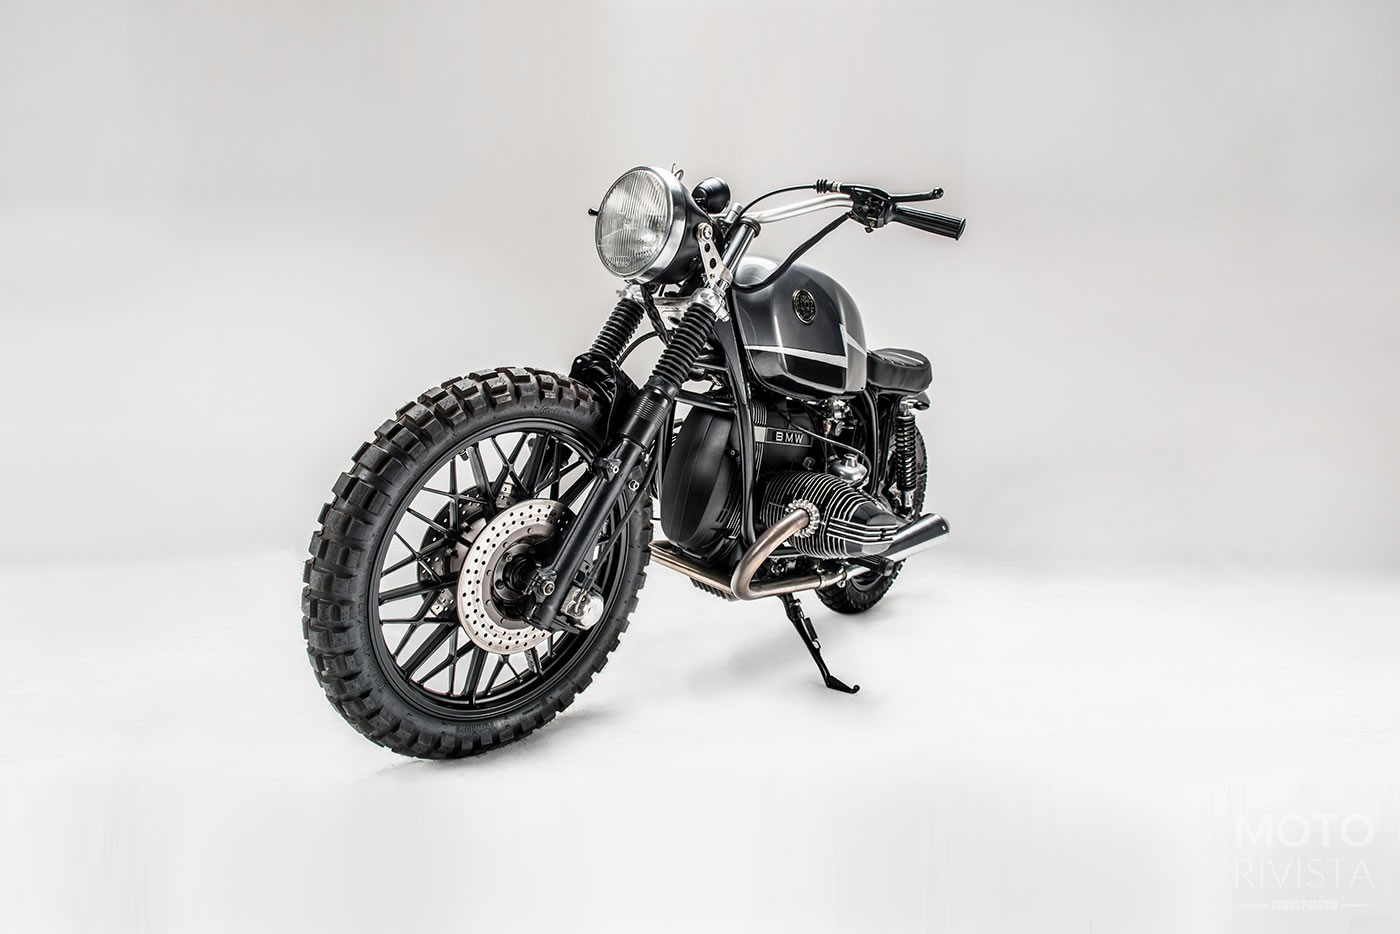 Custom 1979 BMW R100RT Desert sled by Los Muertos